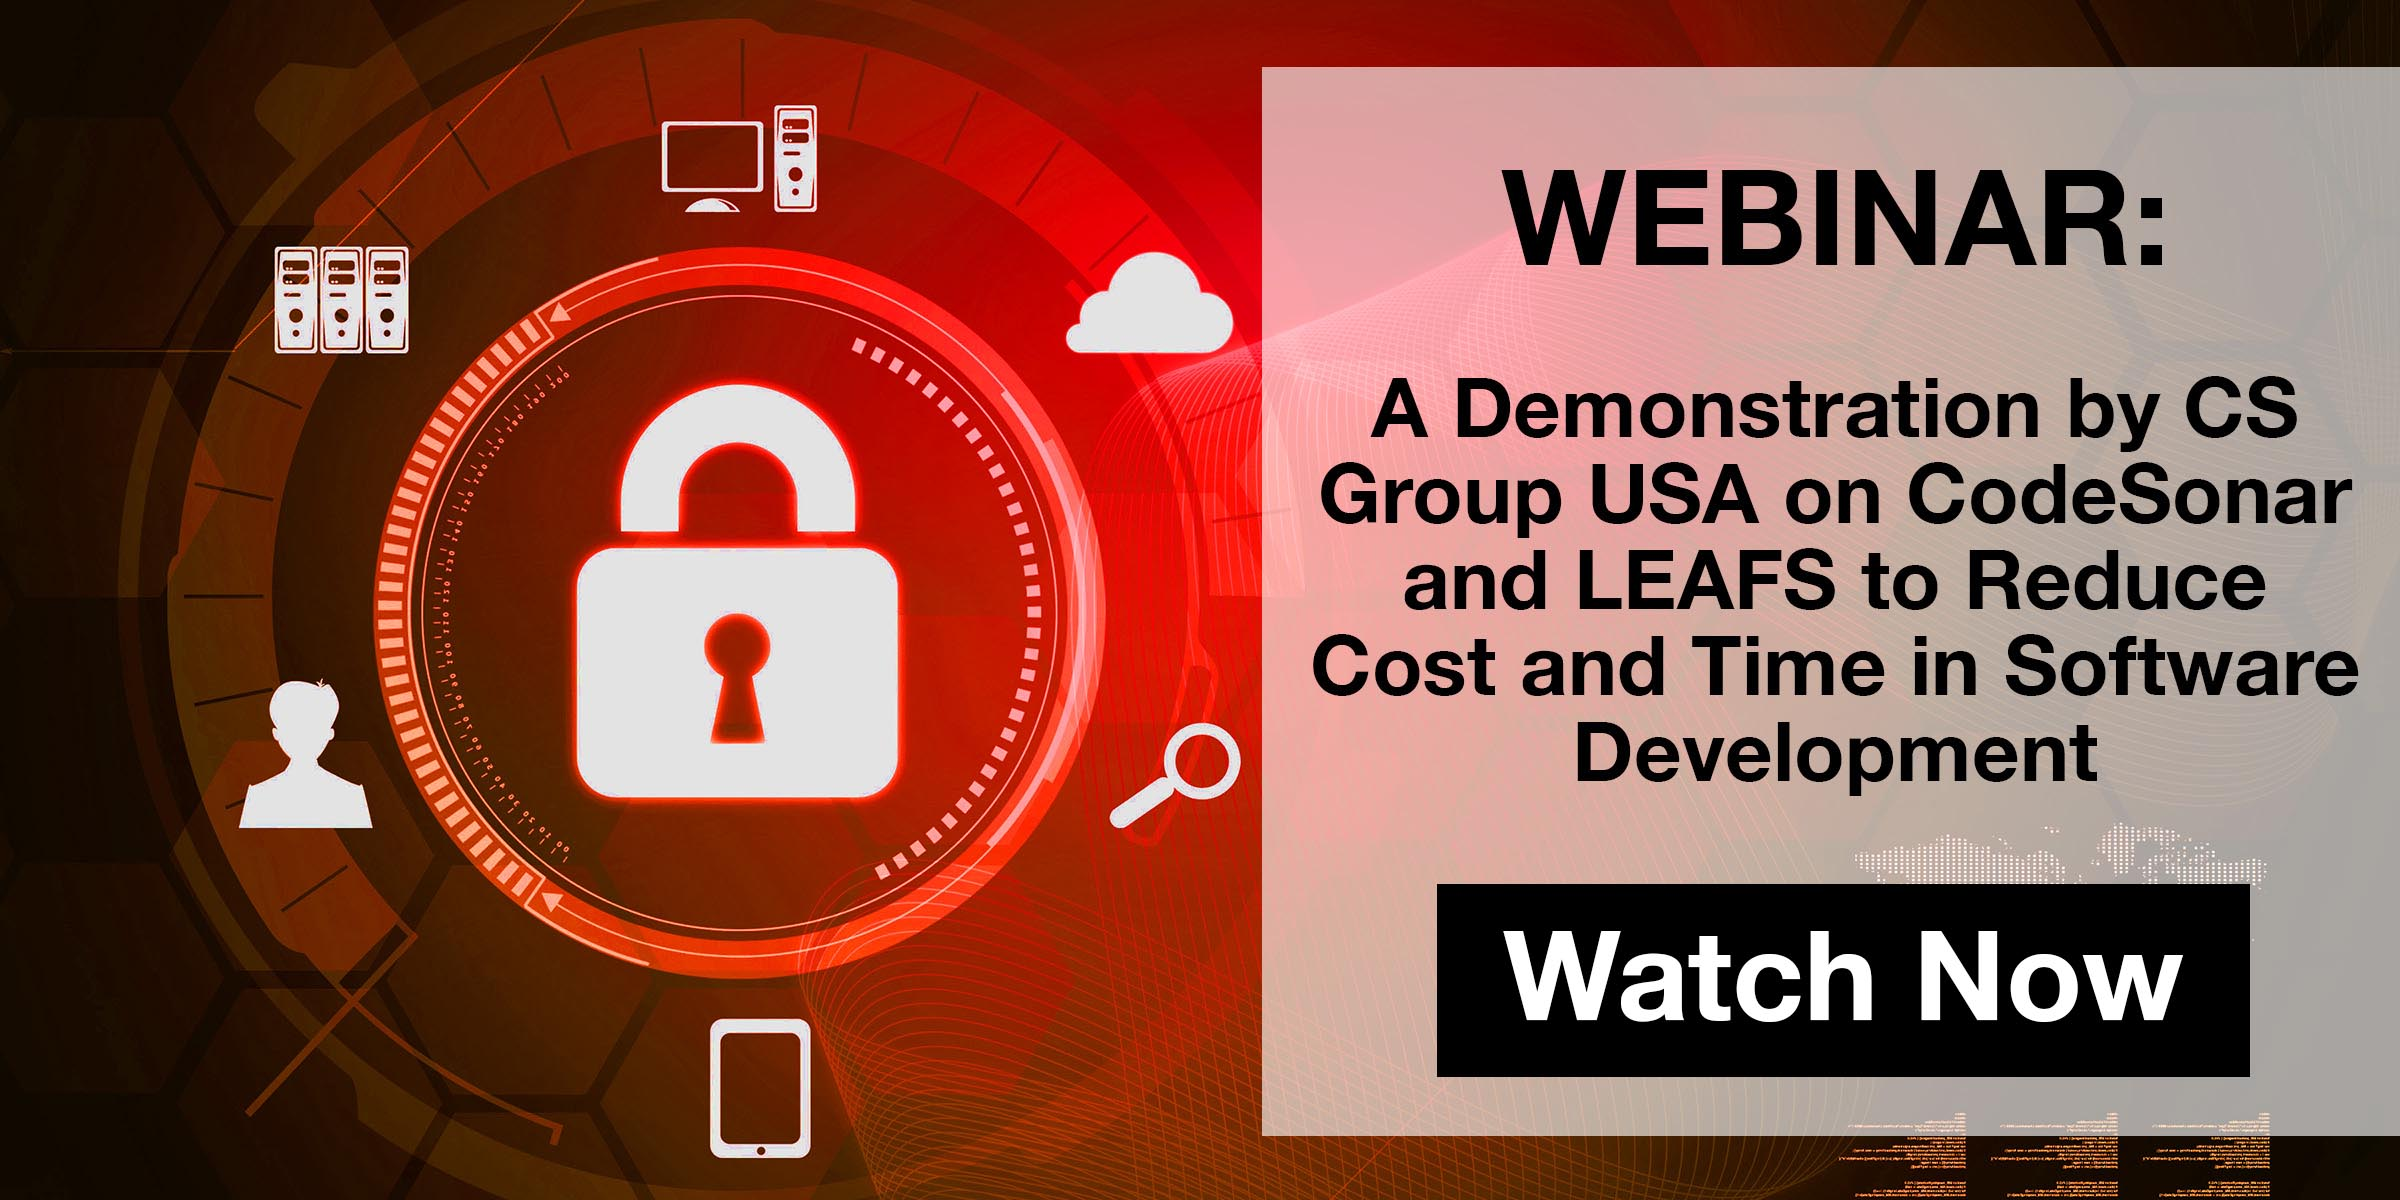 Webinar Recording - A Demonstration by CS Group USA on CodeSonar and LEAFS to Reduce Cost and Time in Software Development